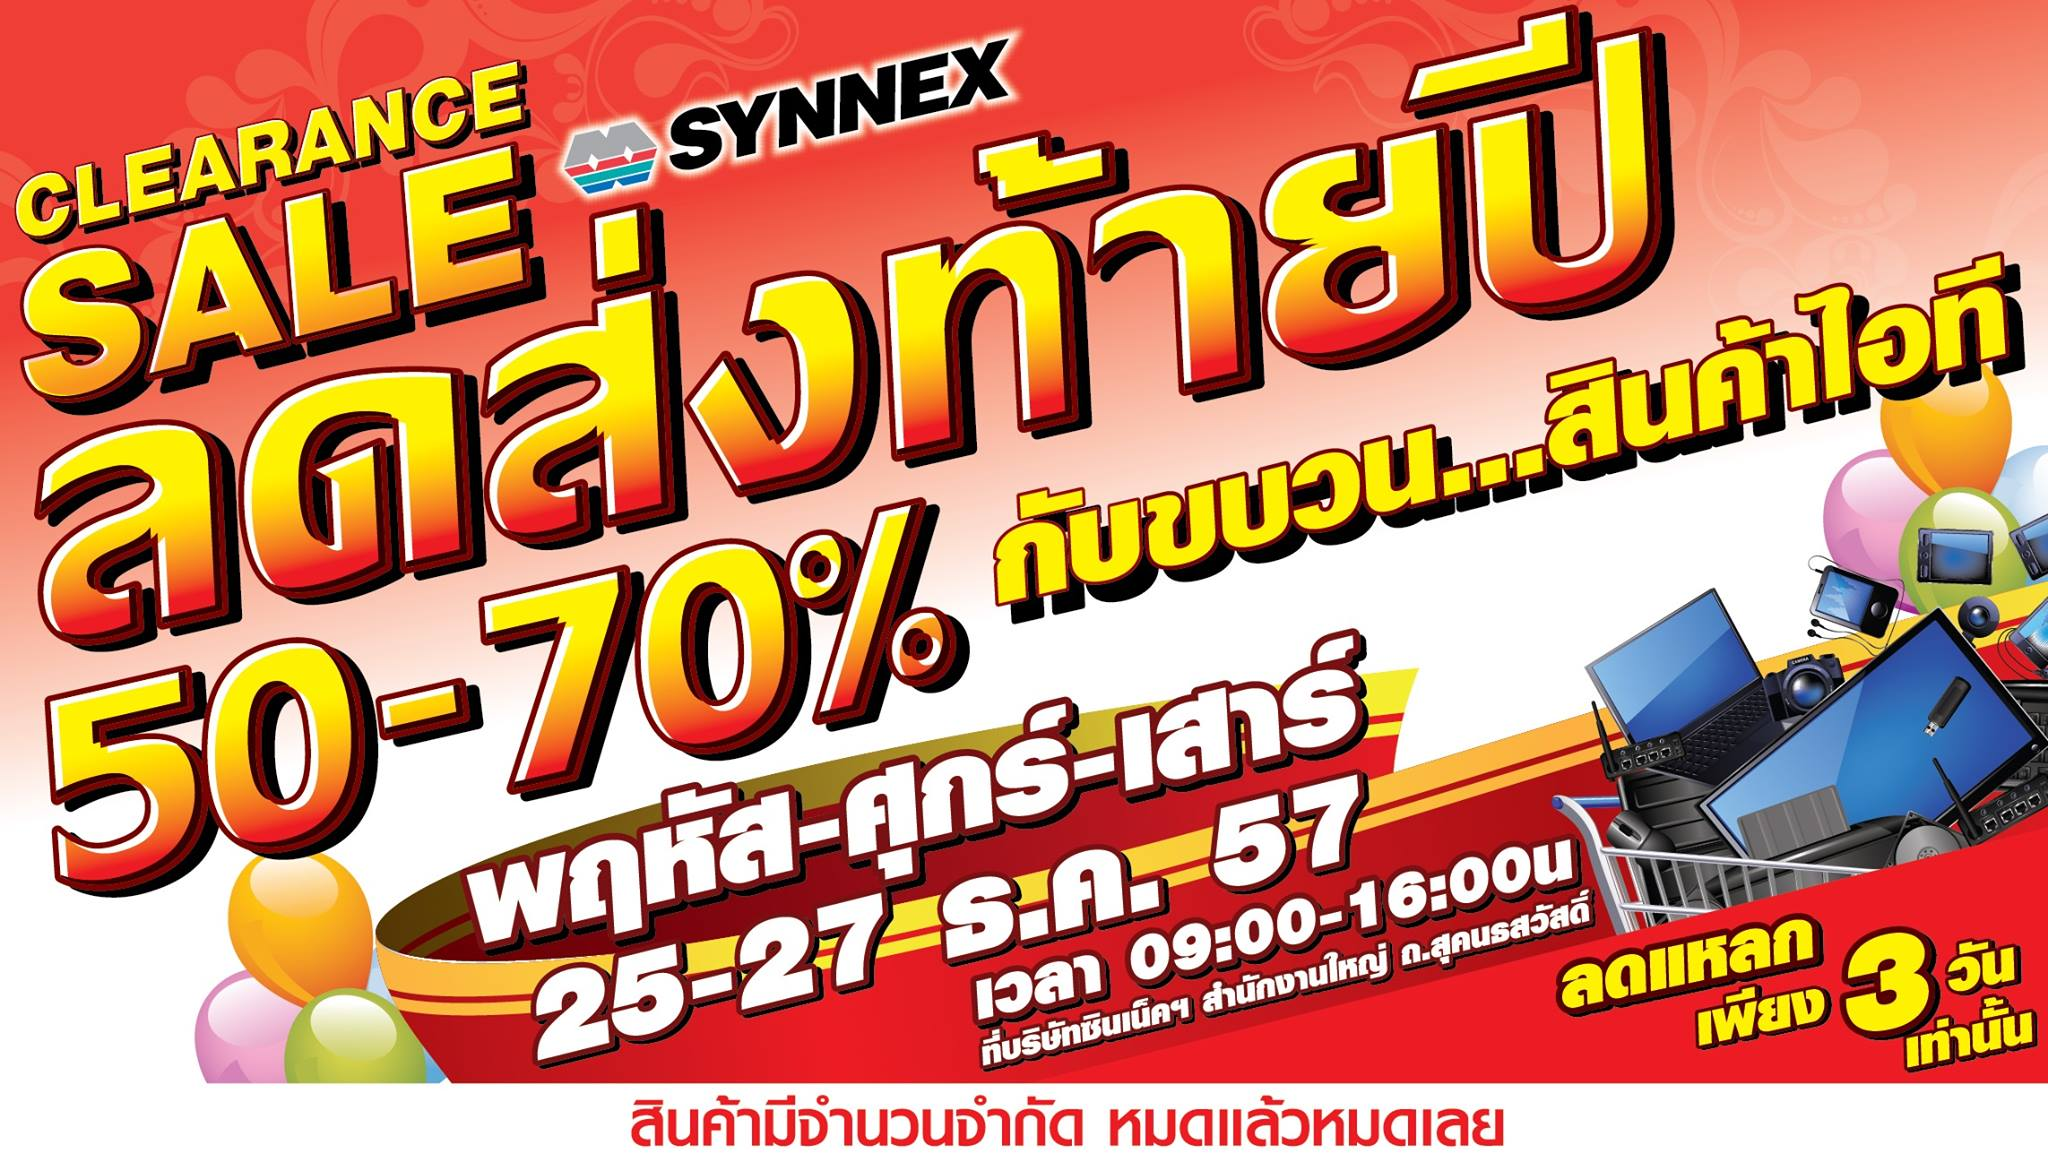 Synnex Clearance Sale 2014 015